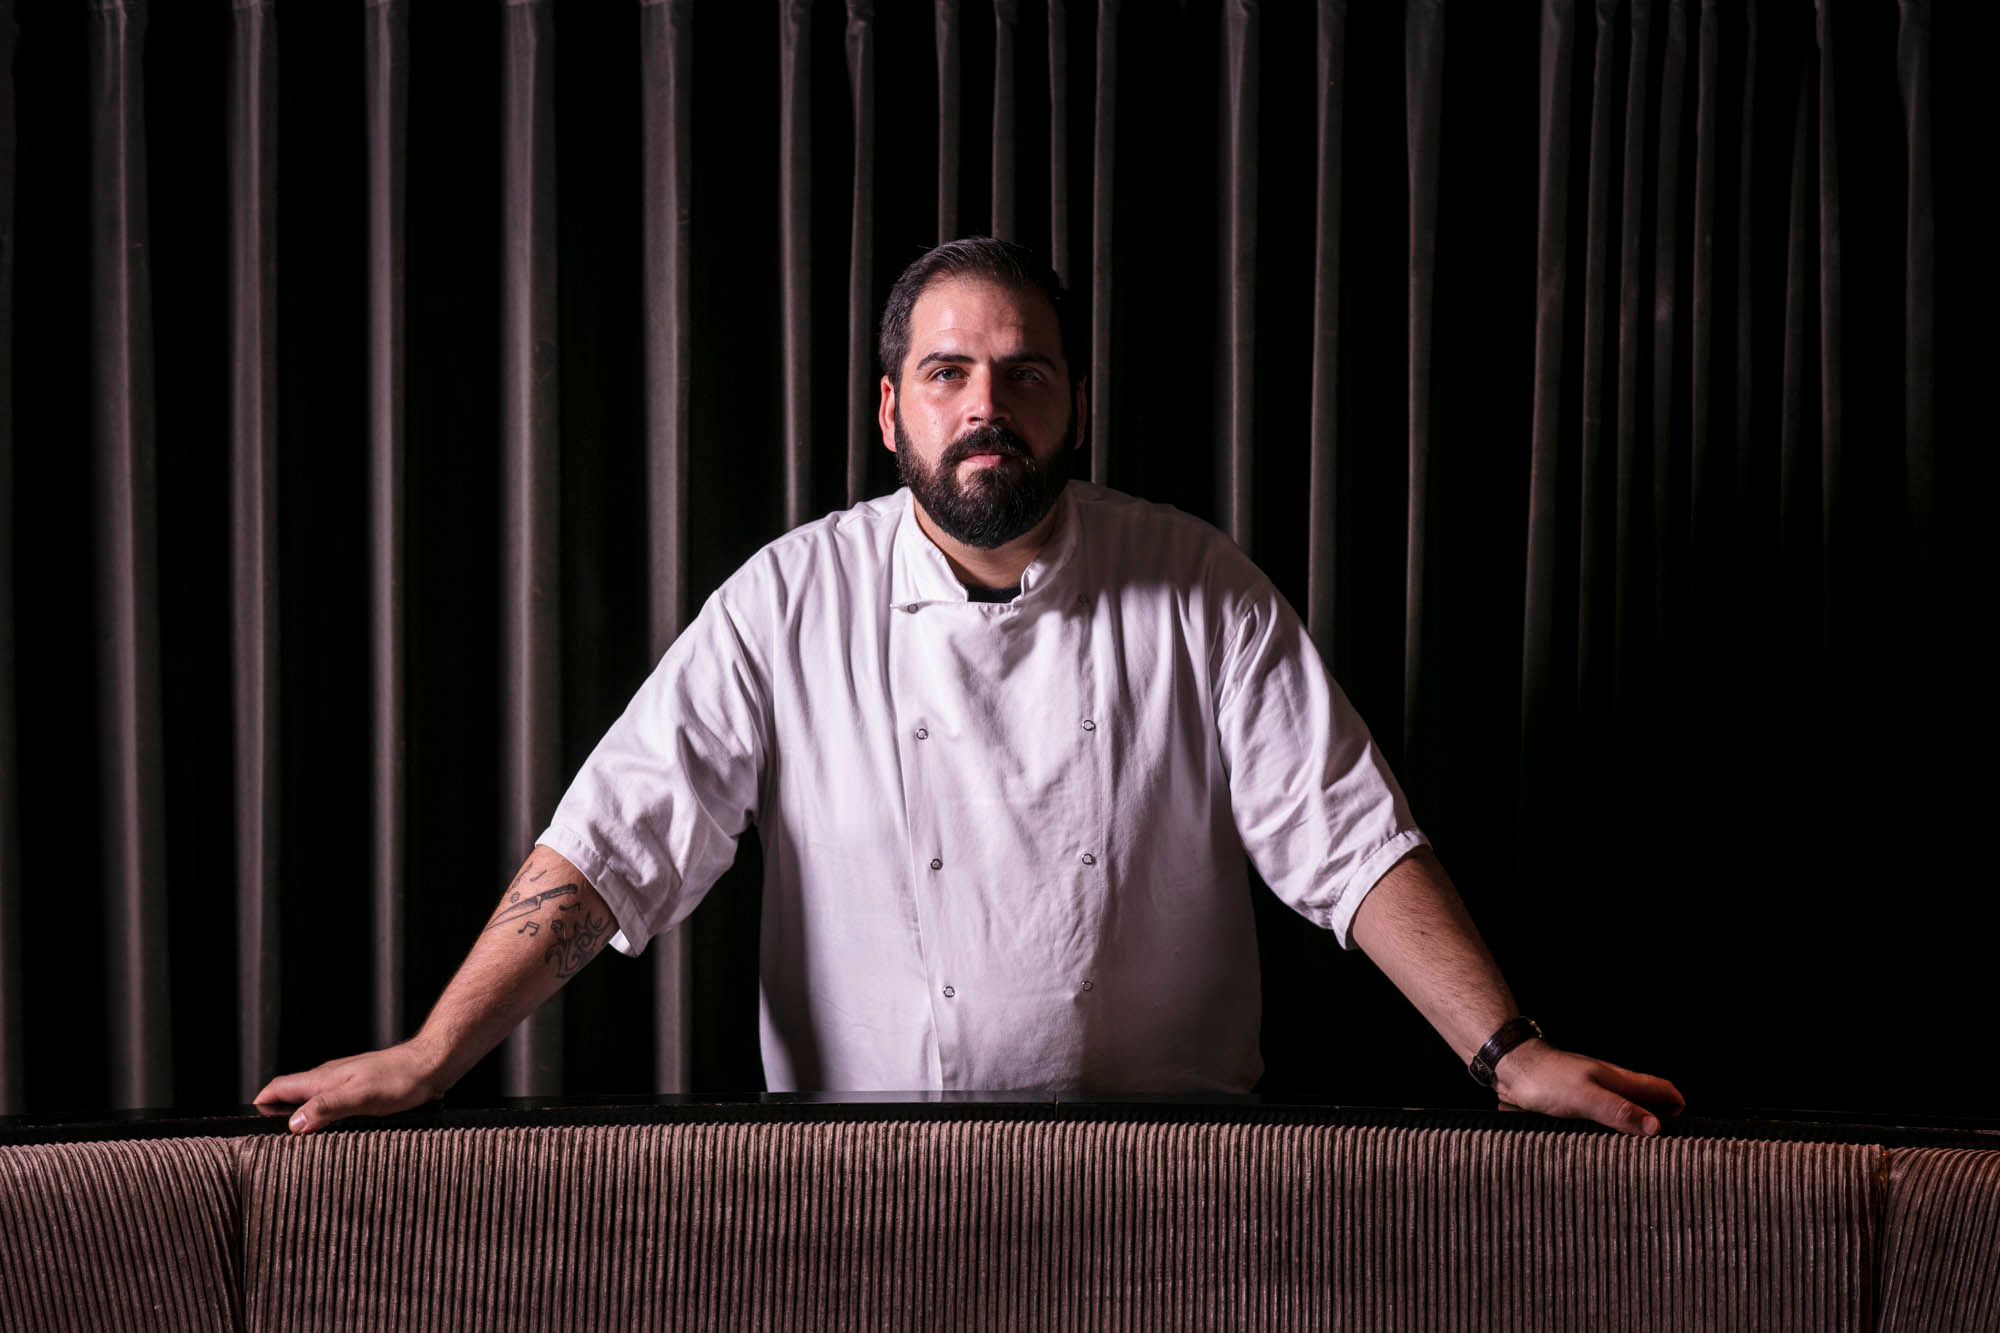 Nuno Goncalves, executive head chef of Quaglino's